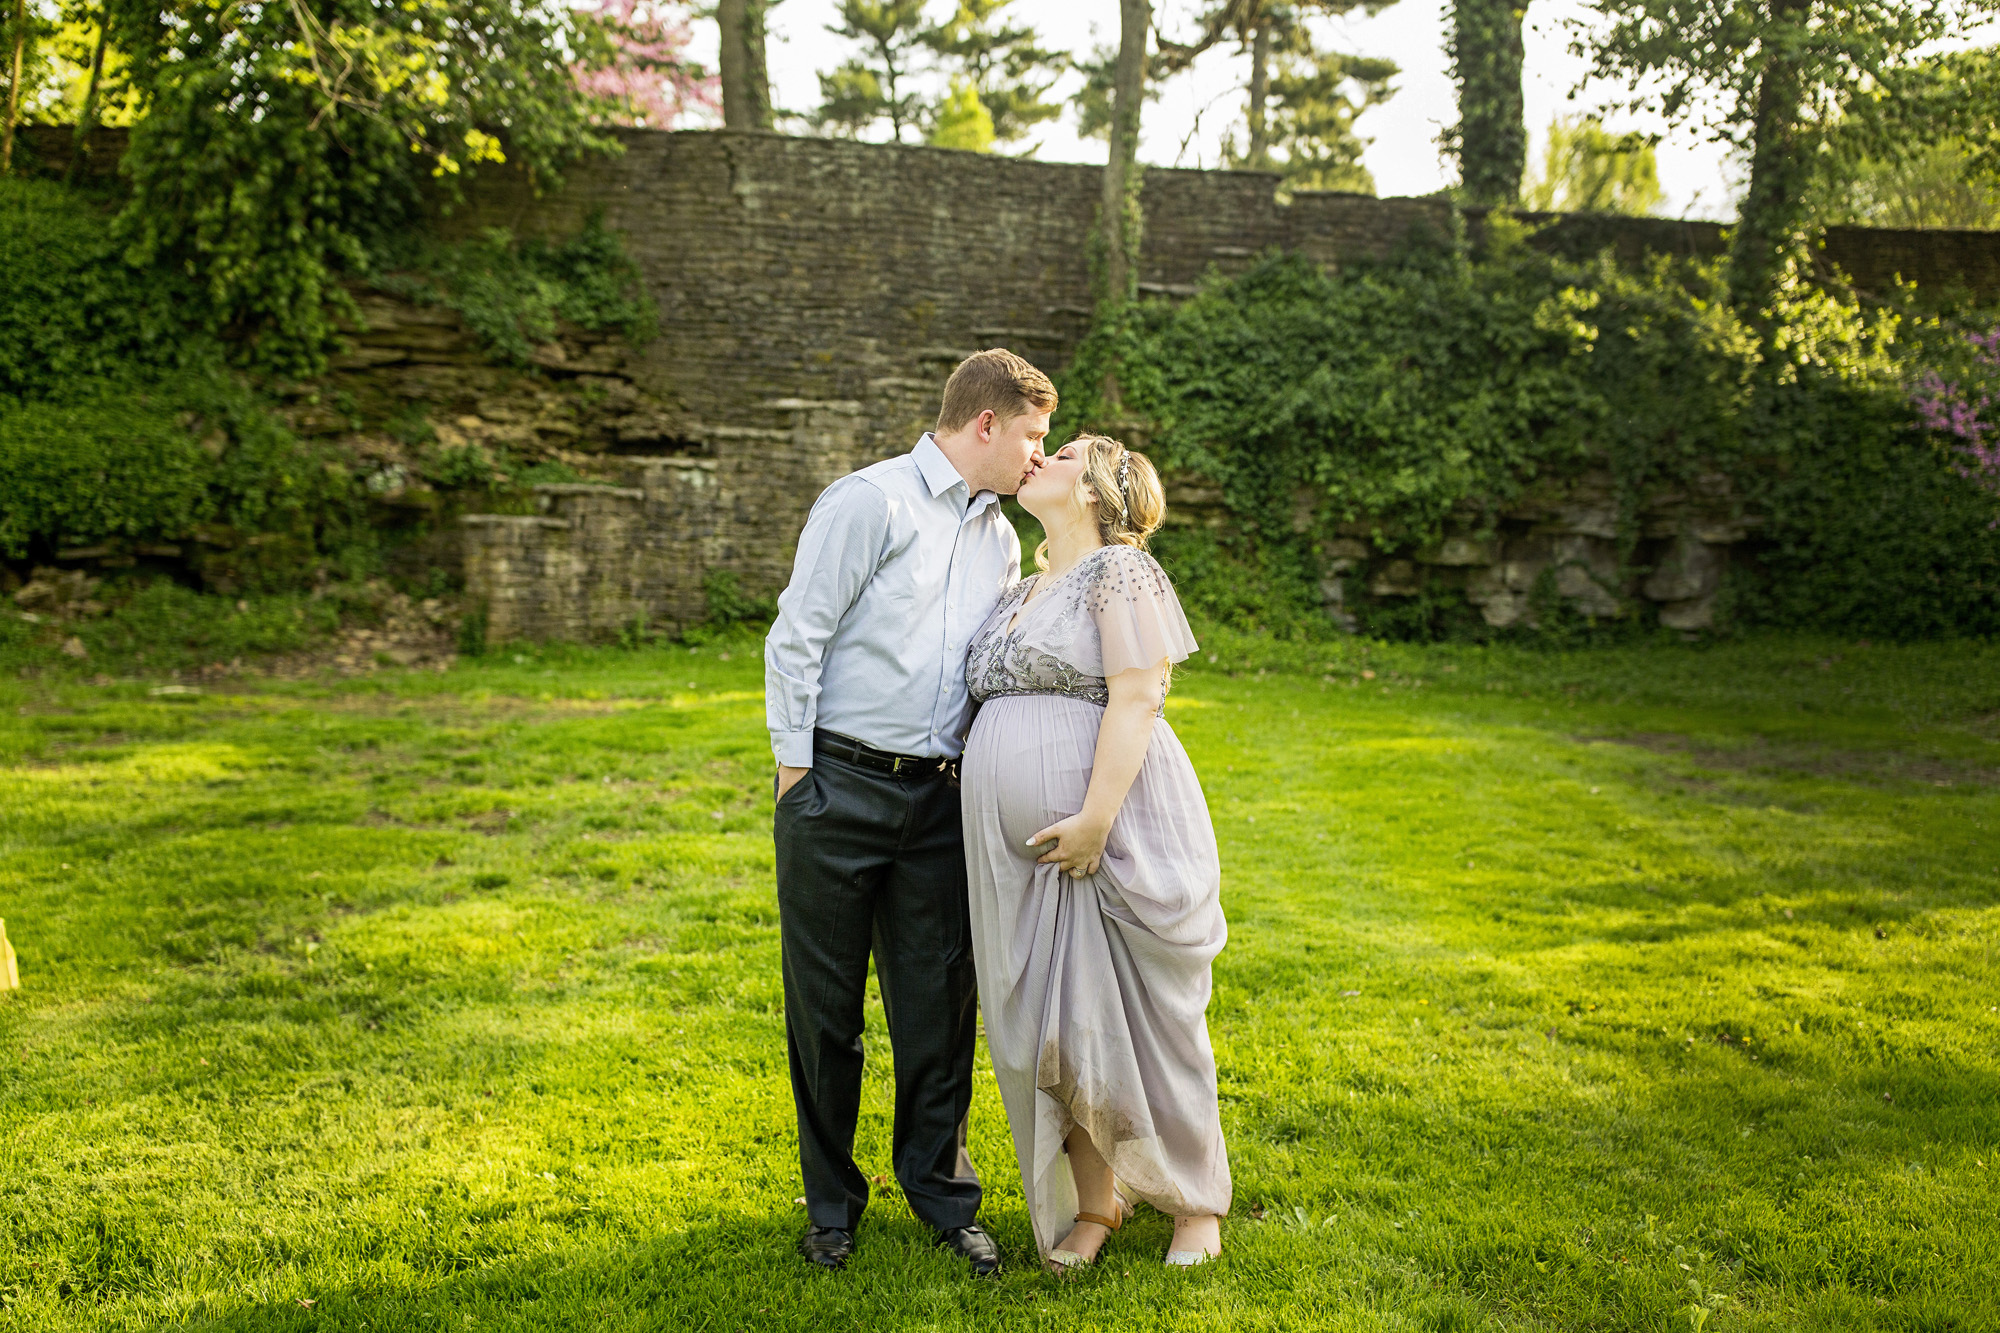 Seriously_Sabrina_Photography_Lexington_Kentucky_Fairytale_Maternity_Portraits_Horse_Park_Reynolds_20.jpg